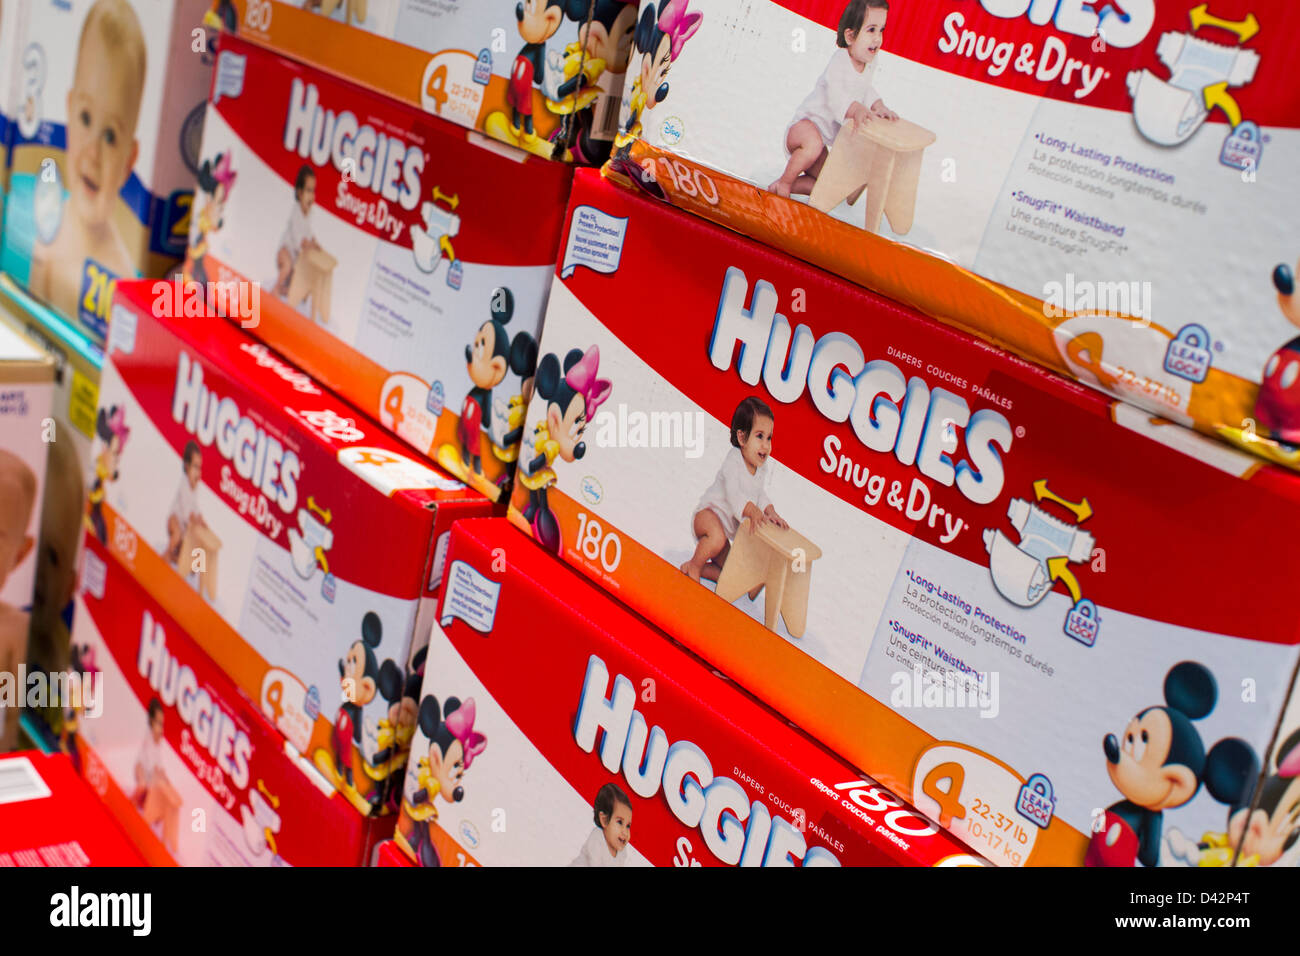 Huggies diapers on display at a costco wholesale warehouse club huggies diapers on display at a costco wholesale warehouse club thecheapjerseys Images